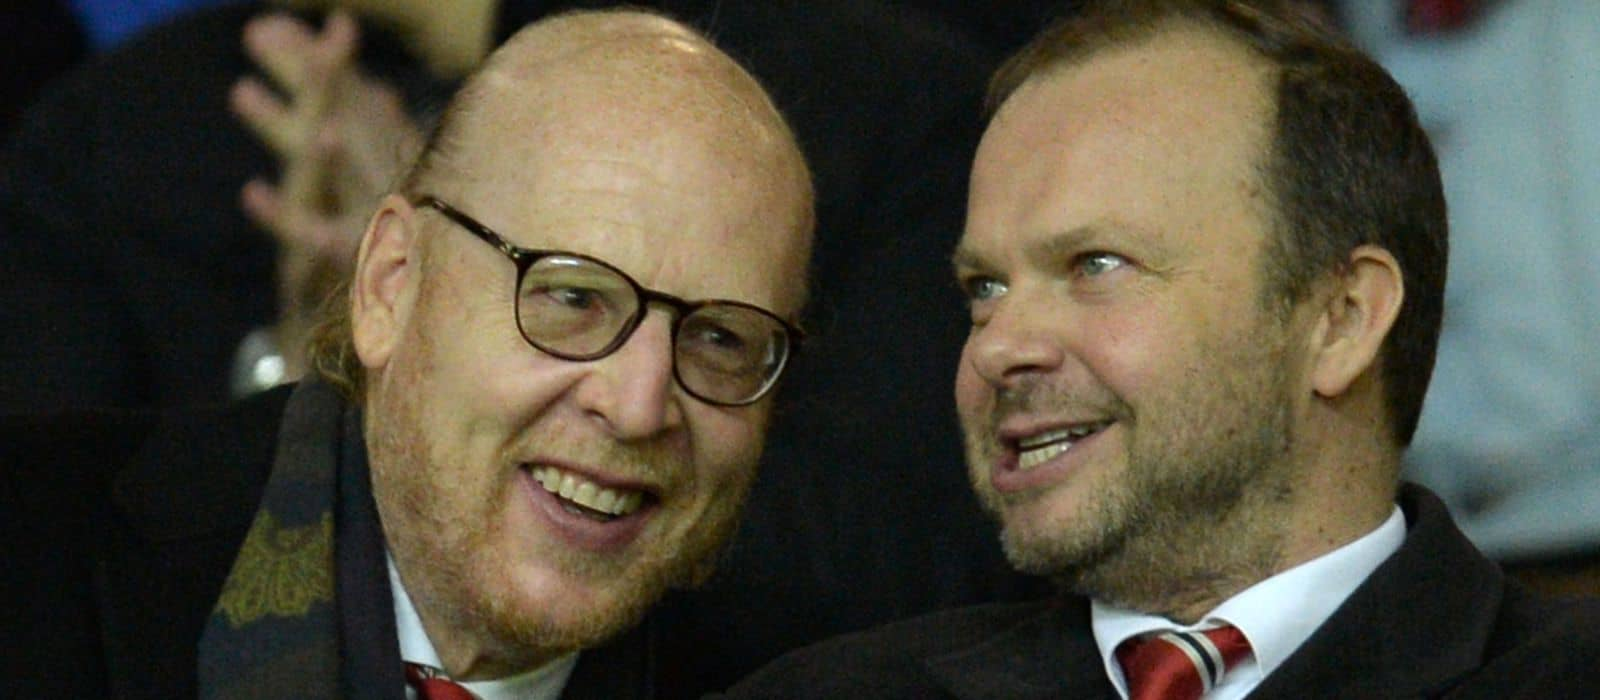 Man United fans want change of ownership more than new players